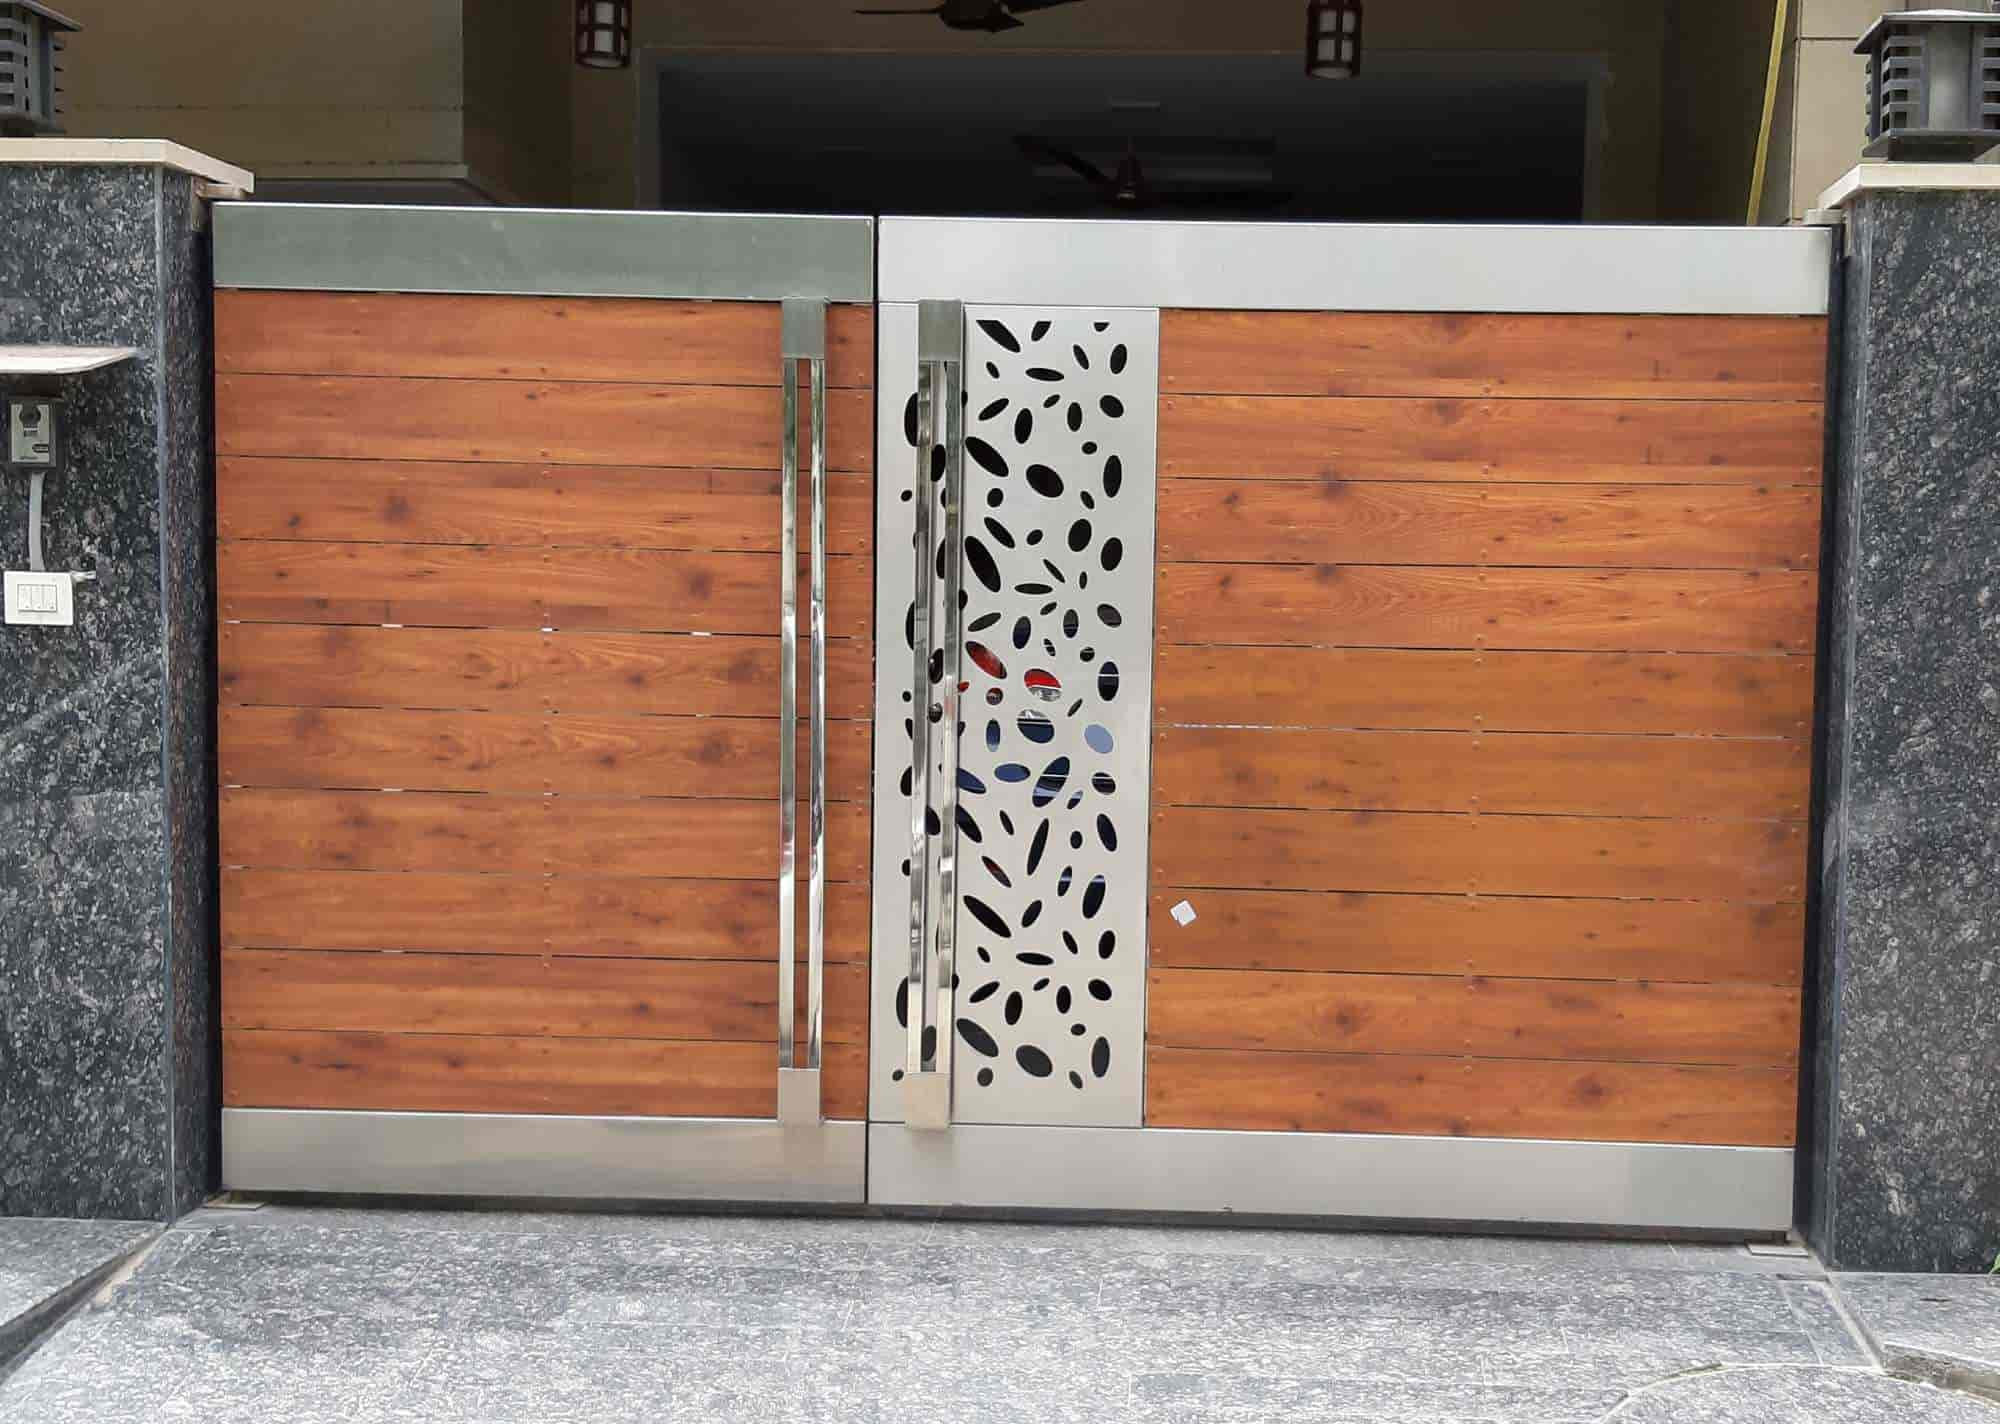 Stainless Steel Front Gate Design Ss Gate Designs In Delhi Orice,New Born Baby Welcome Home Decoration Ideas